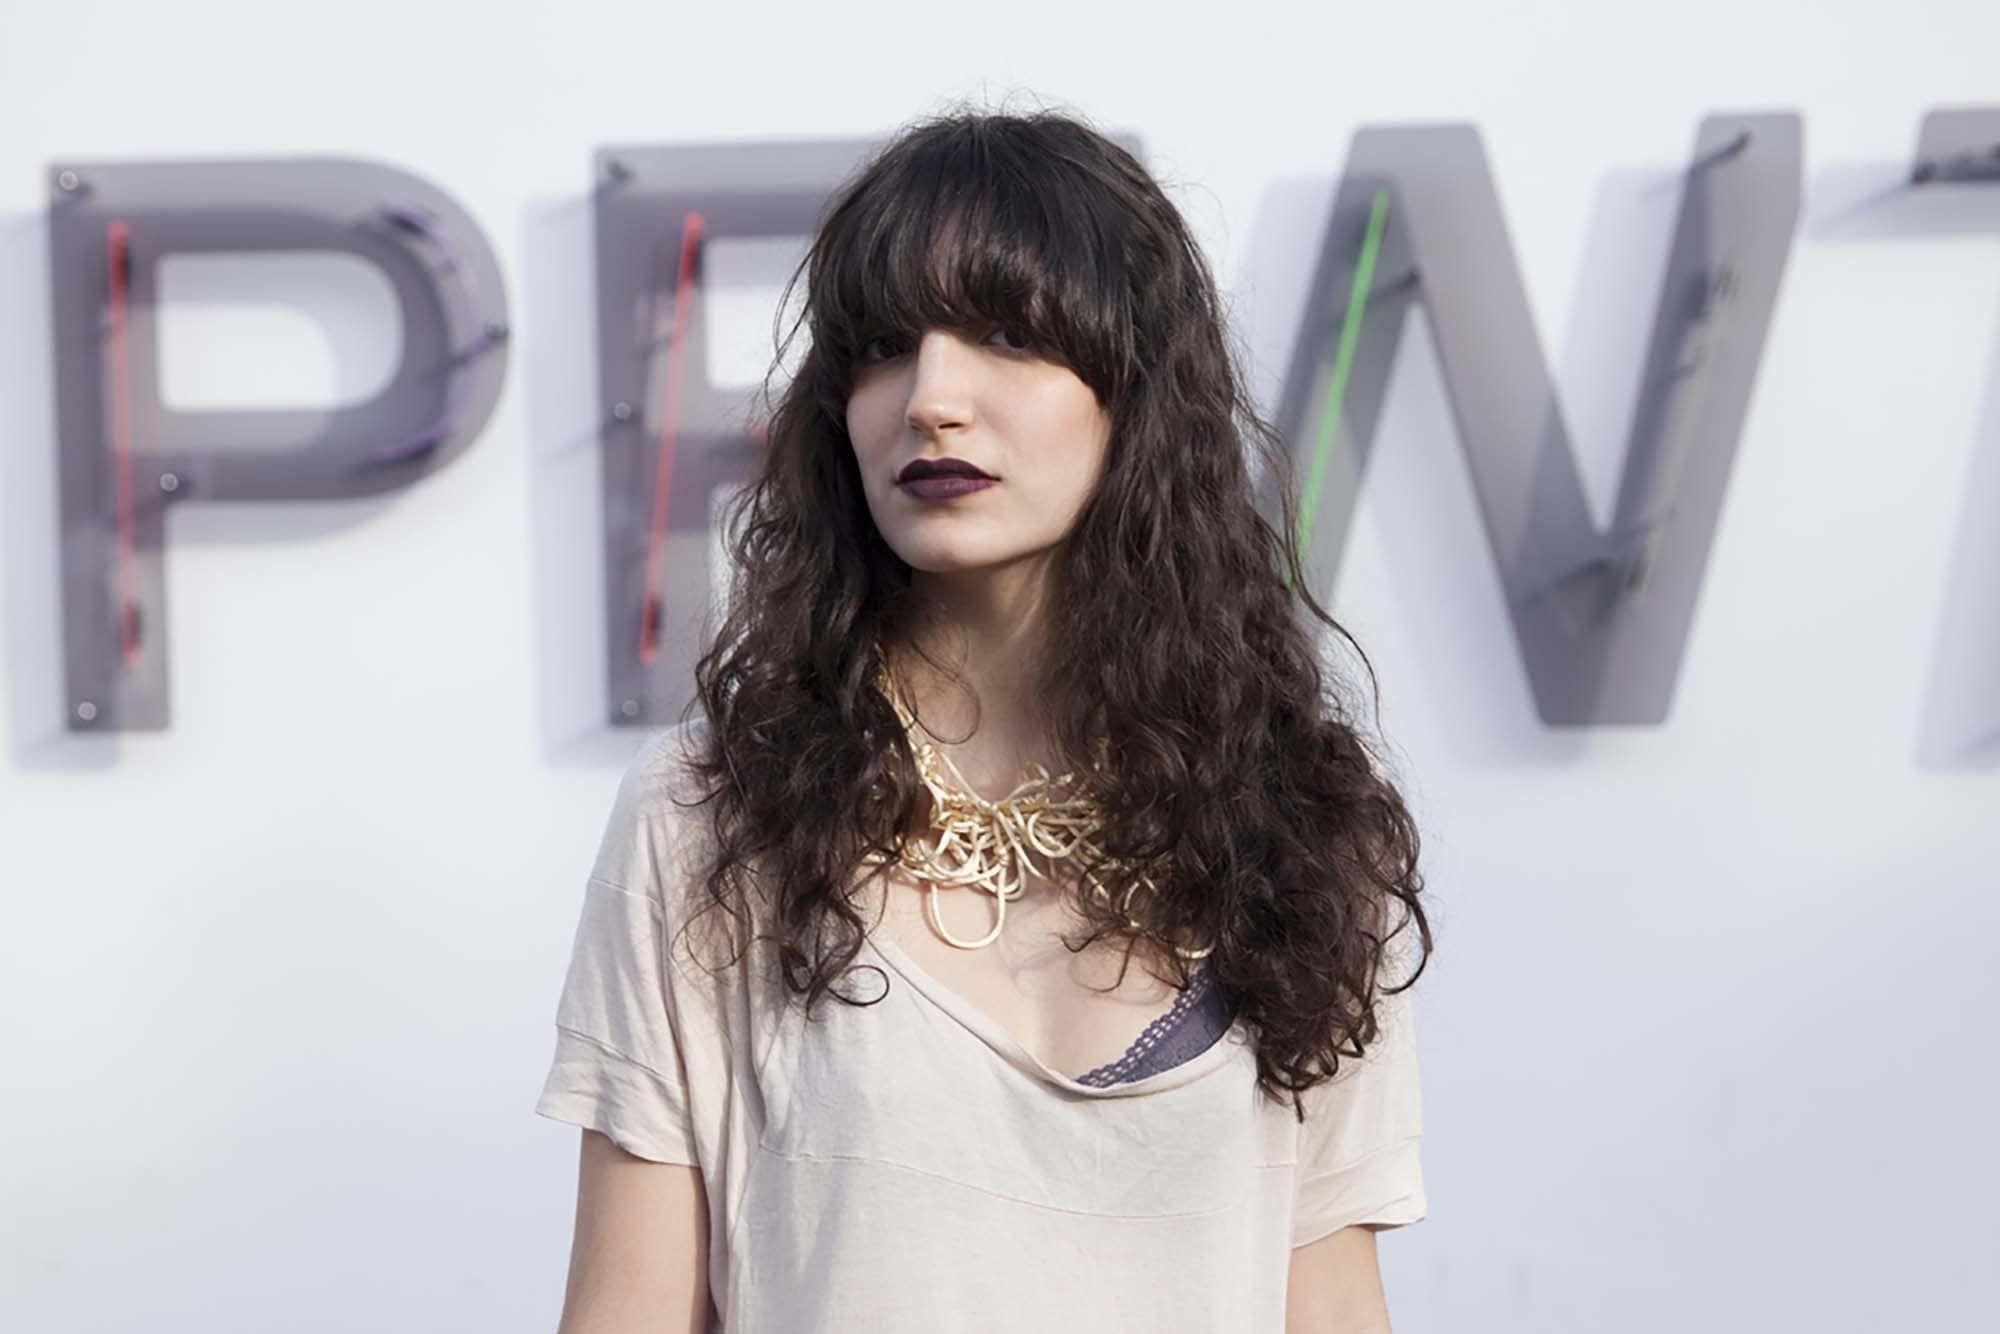 Curly Hair And Bangs: 4 Trendy Hairstyle Ideas To Try